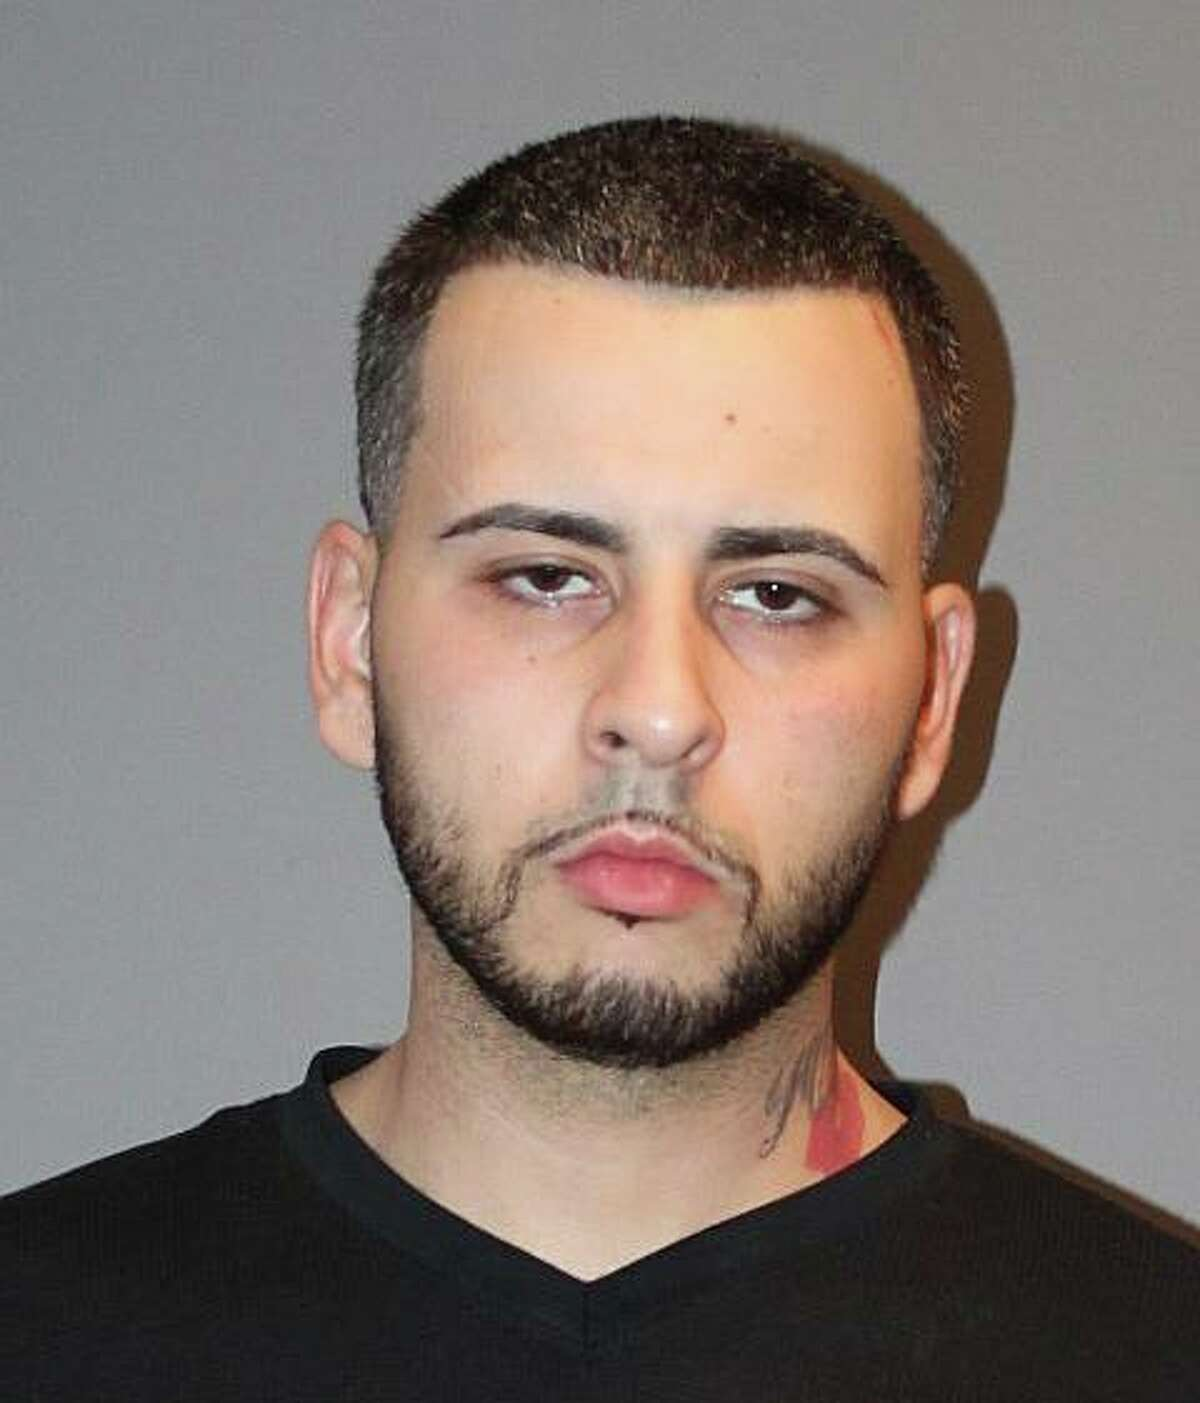 Anthony Velez, 28, of Bridgeport, Conn., is accused of running down three people with his car.